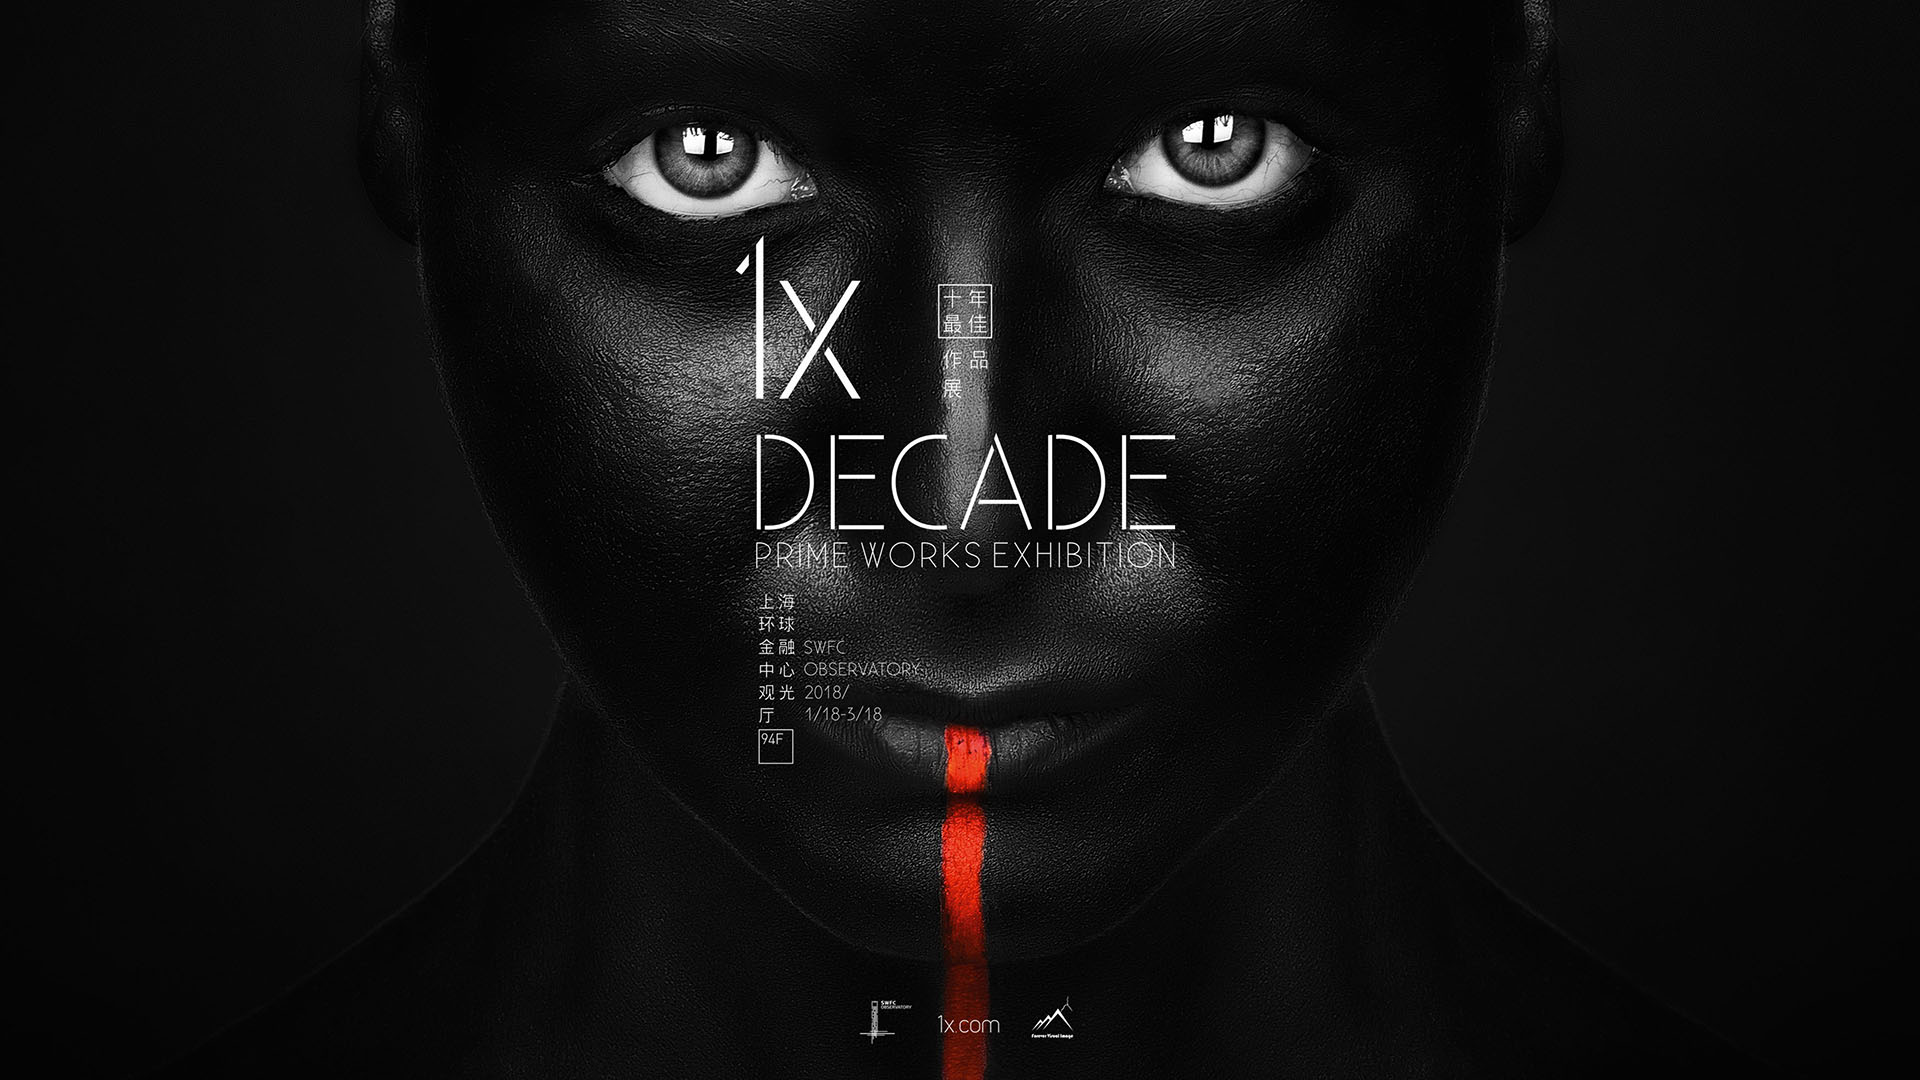 1X DECADE EXHIBITION KV